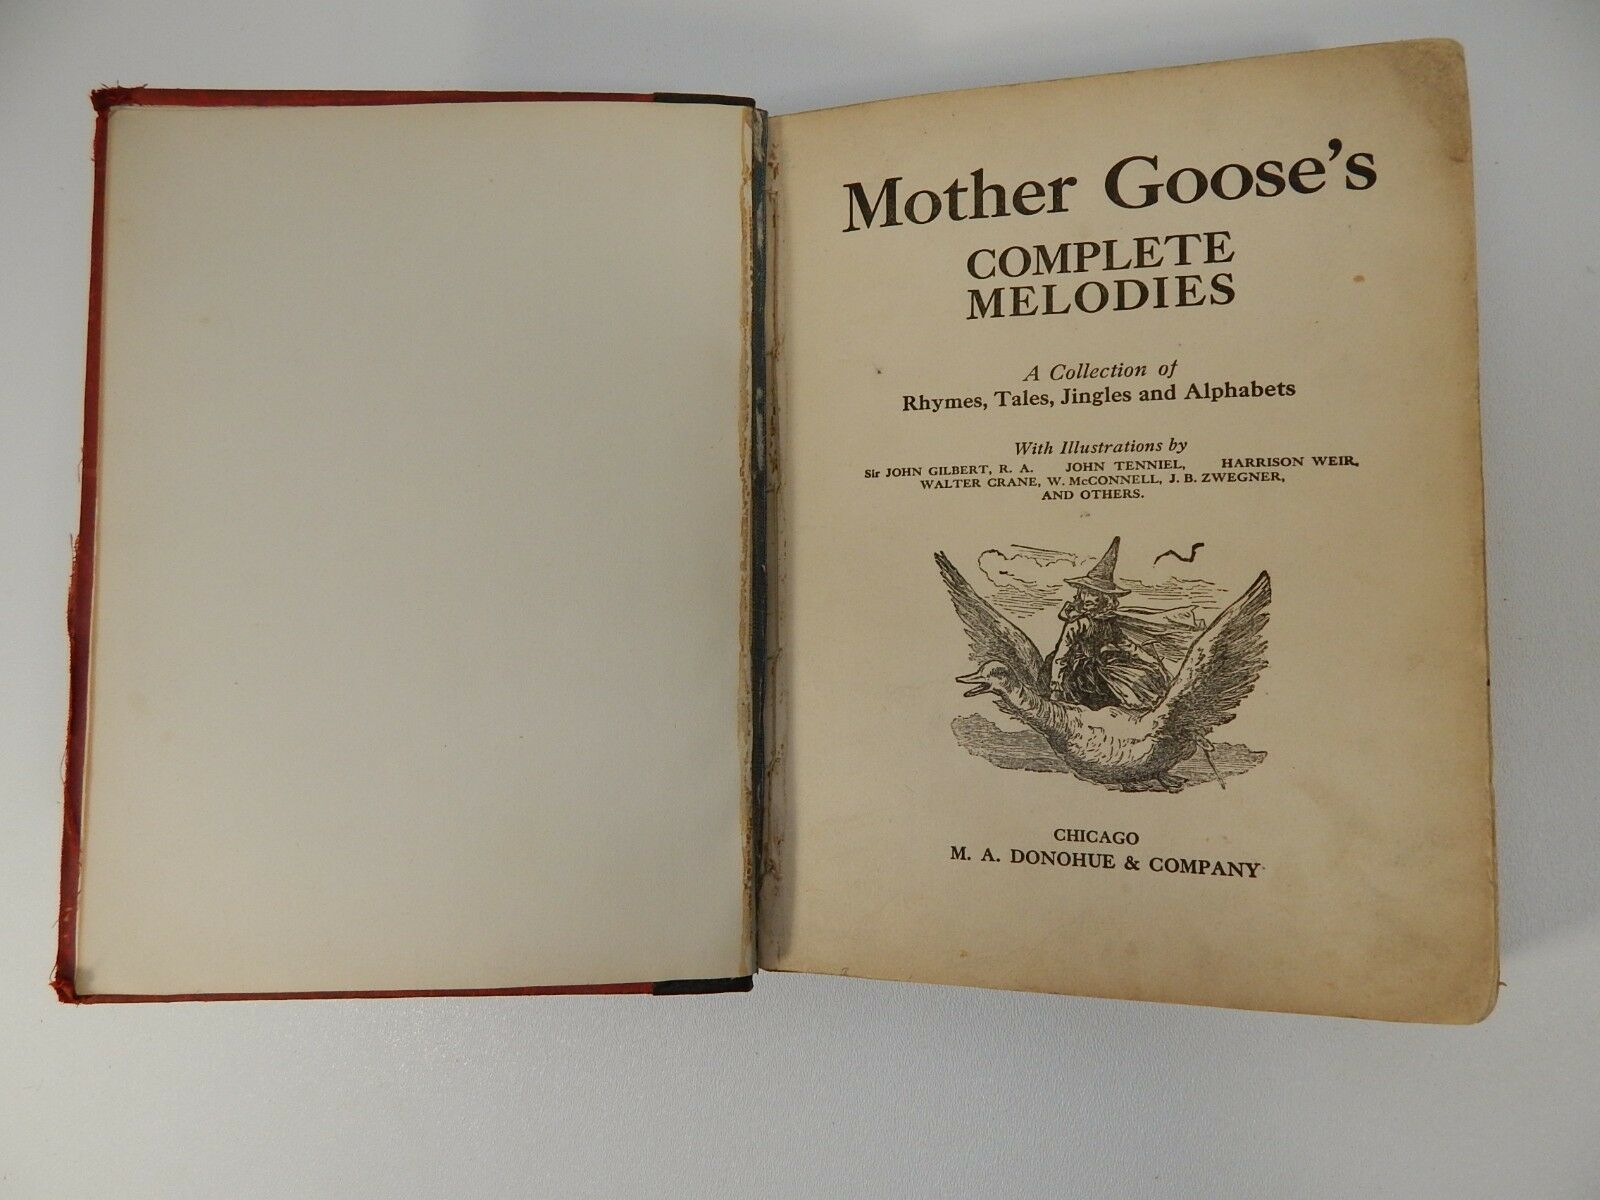 1892 BOOK MOTHER GOOSE'S COMPLETE MELODIES Antique 126 yr old Black Americana